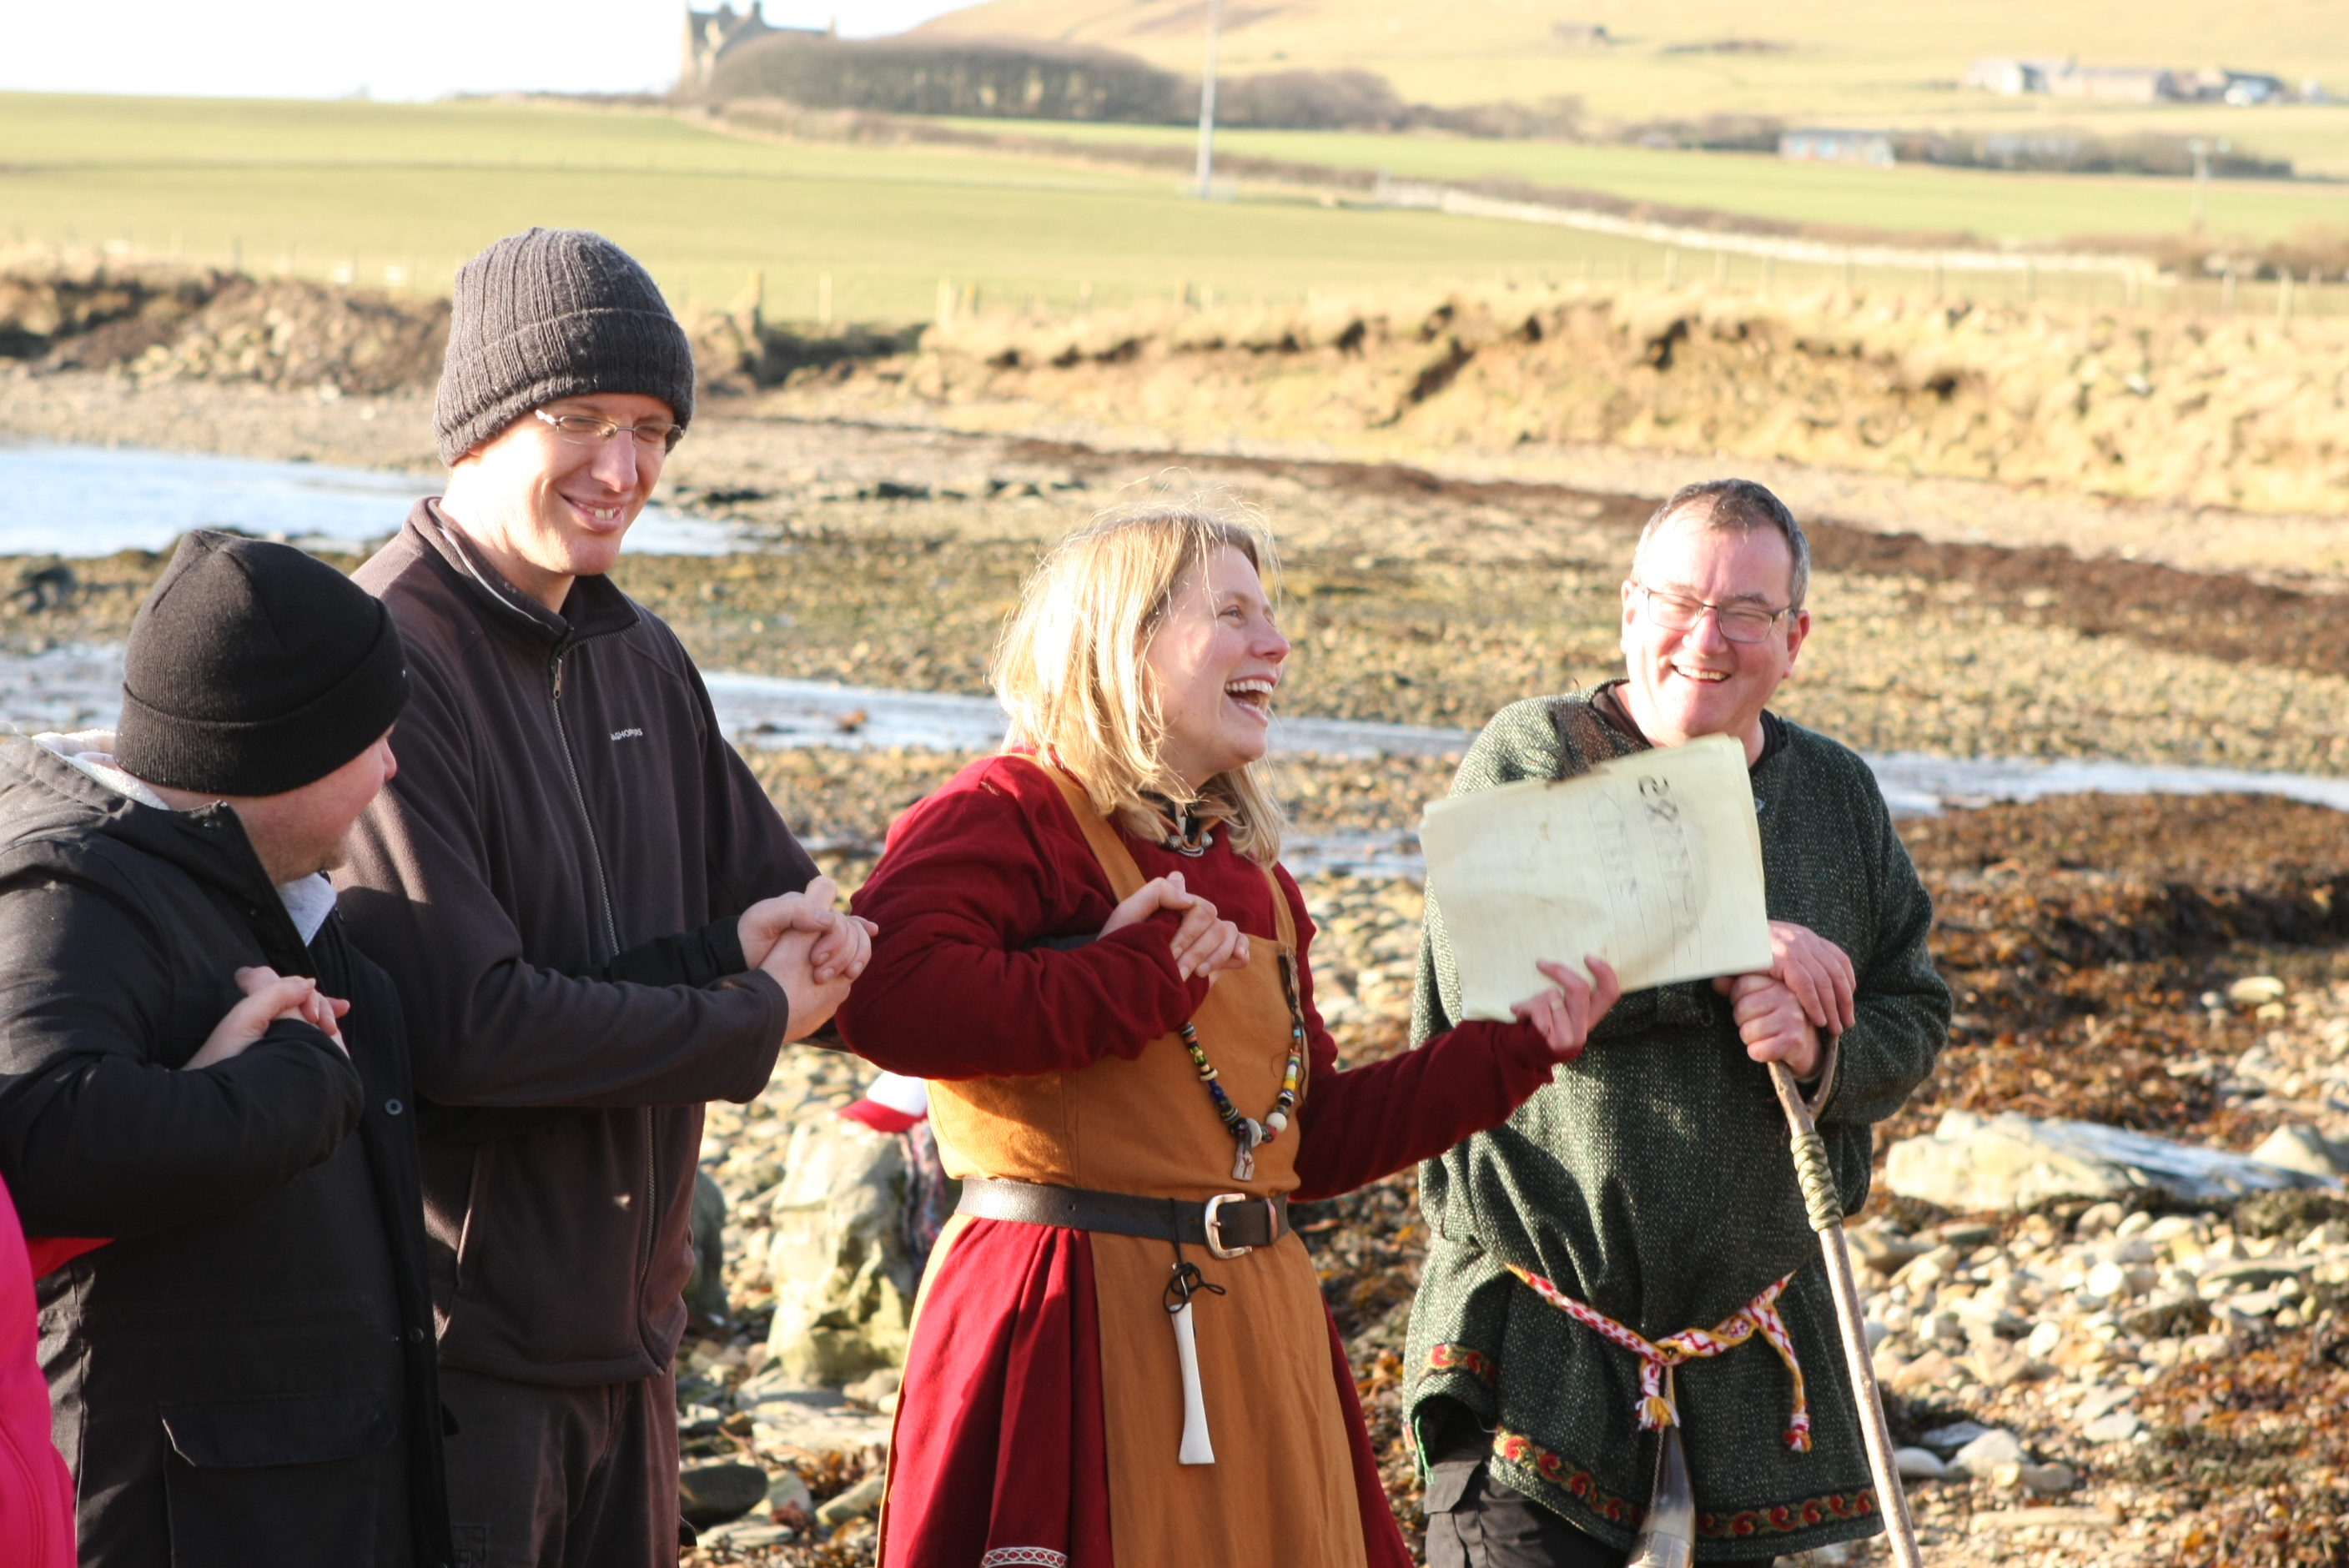 Orkney Viking Hiking: A time travel adventure for all the family